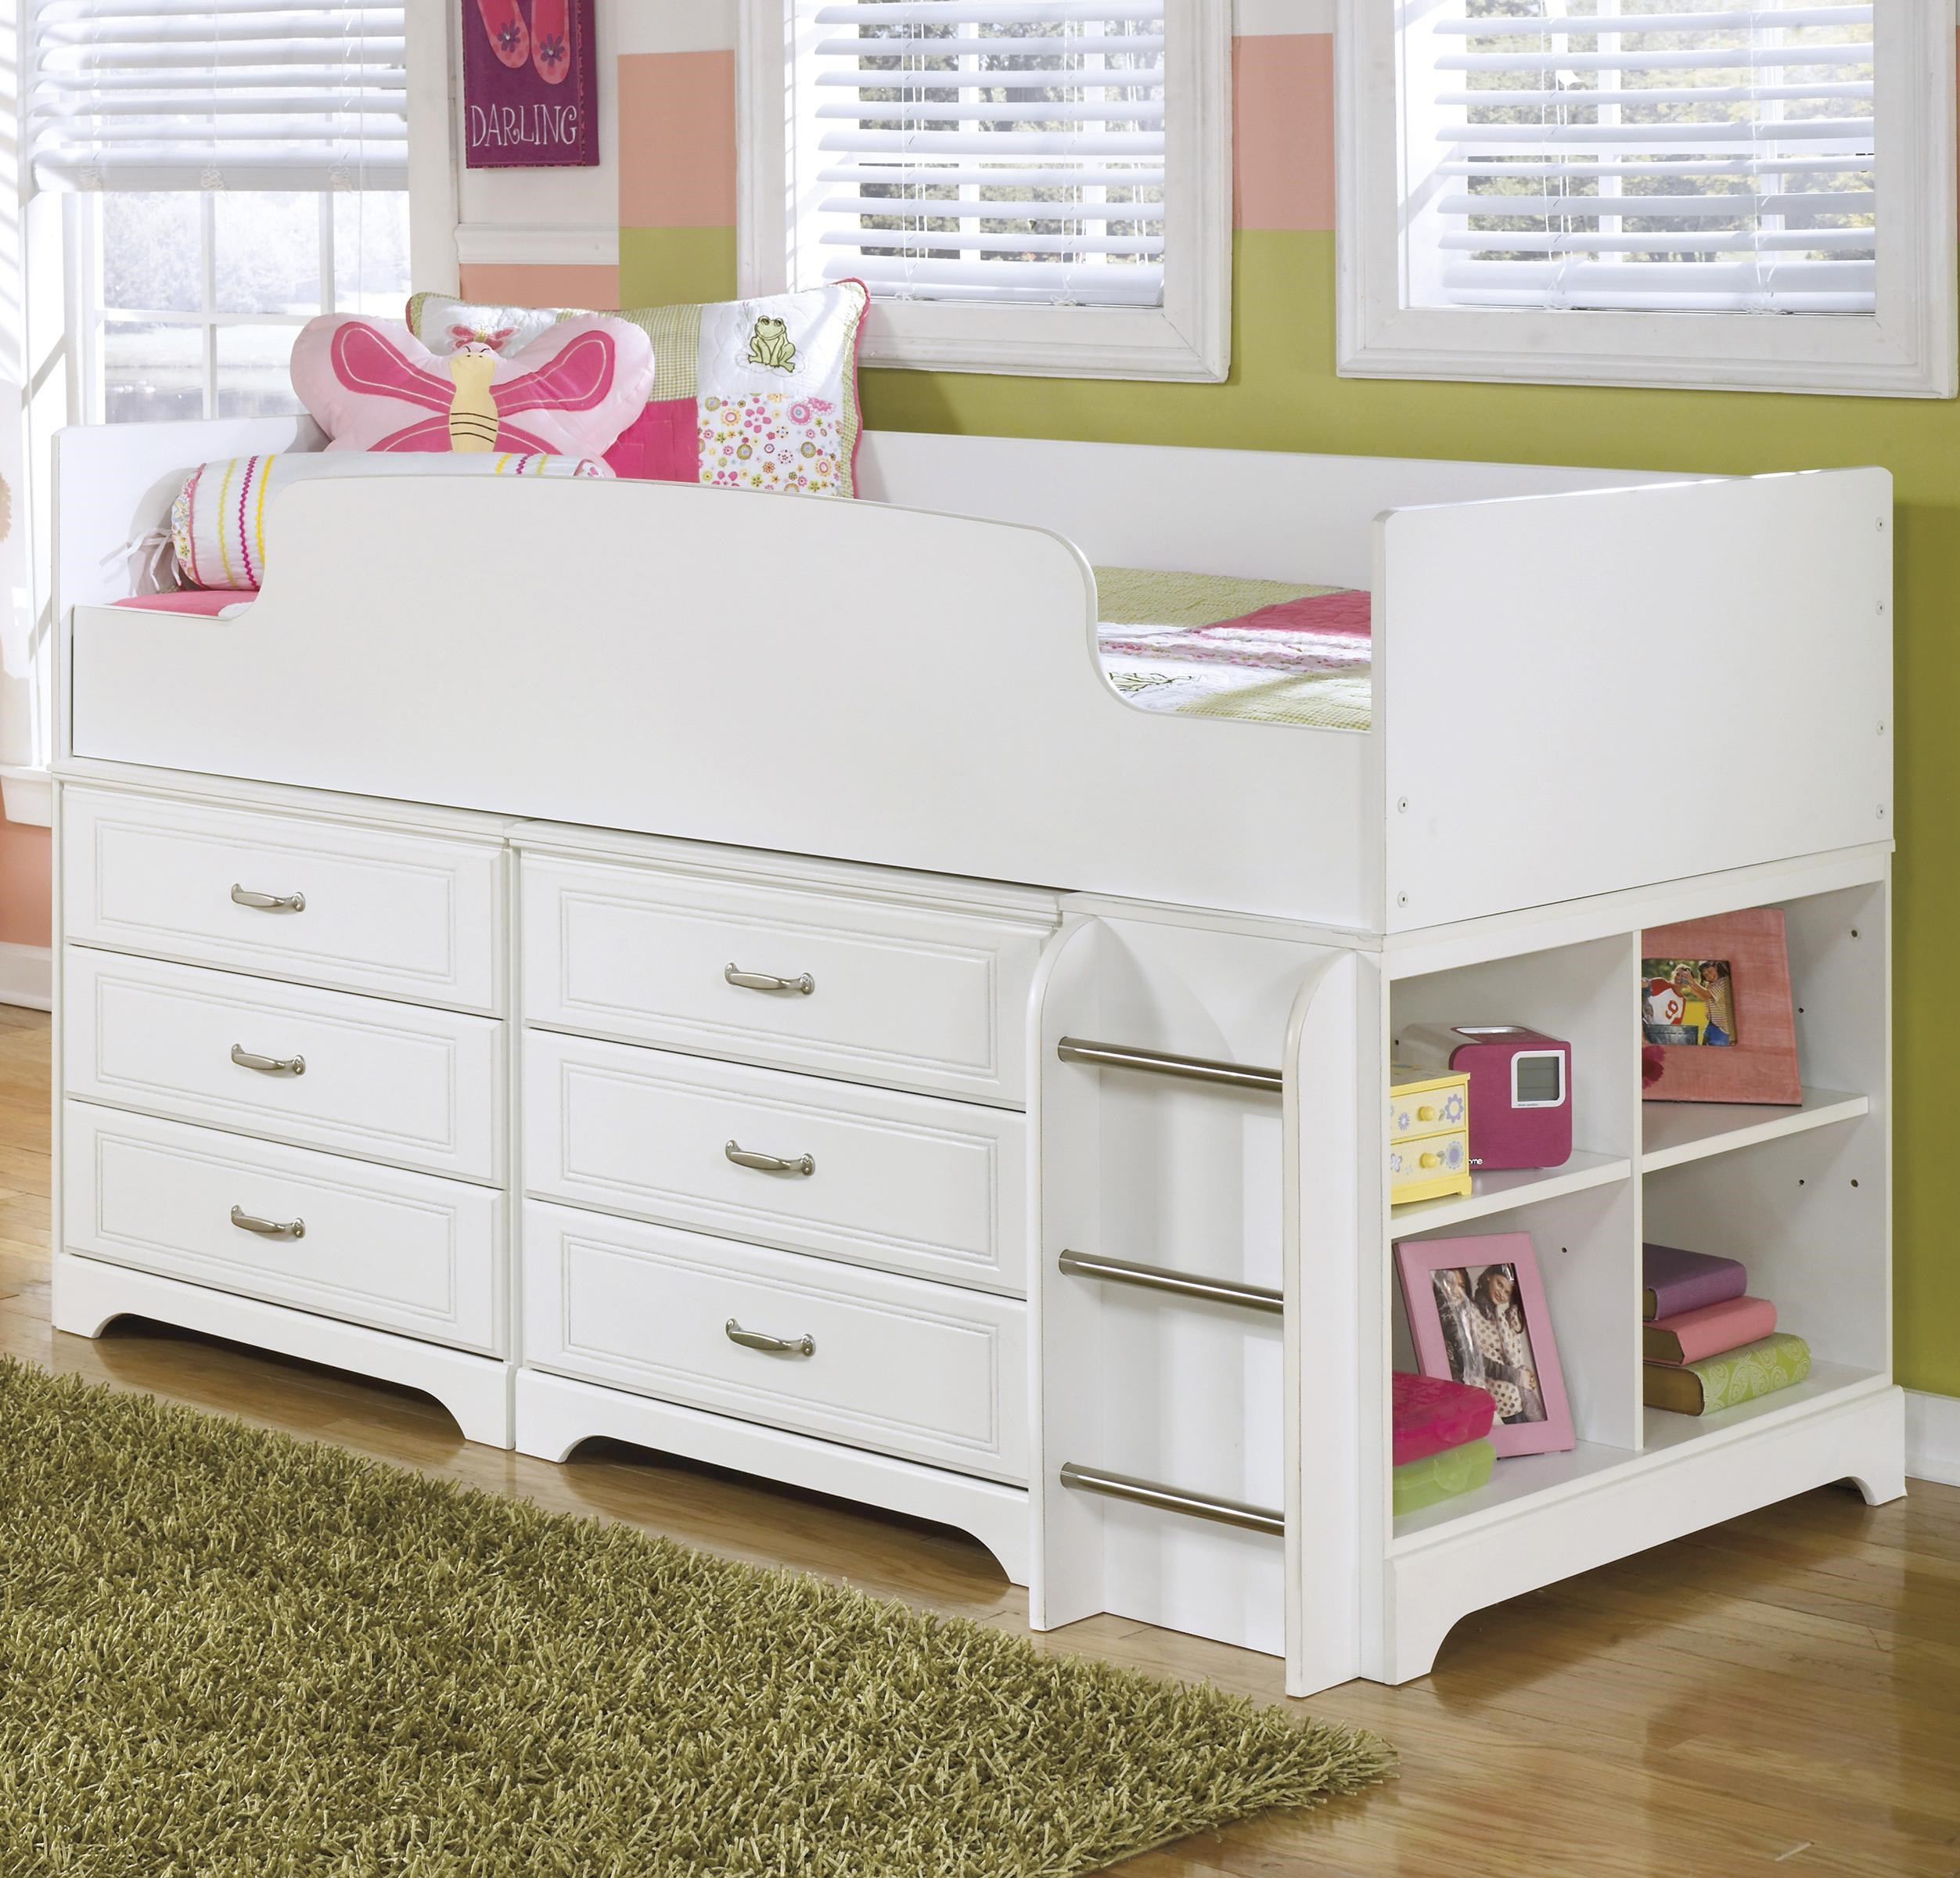 Signature Design by Ashley Lulu Twin Loft Bed w/ Loft Drawer Storage & Signature Design by Ashley Lulu Twin Loft Bed w/ Loft Drawer Storage ...